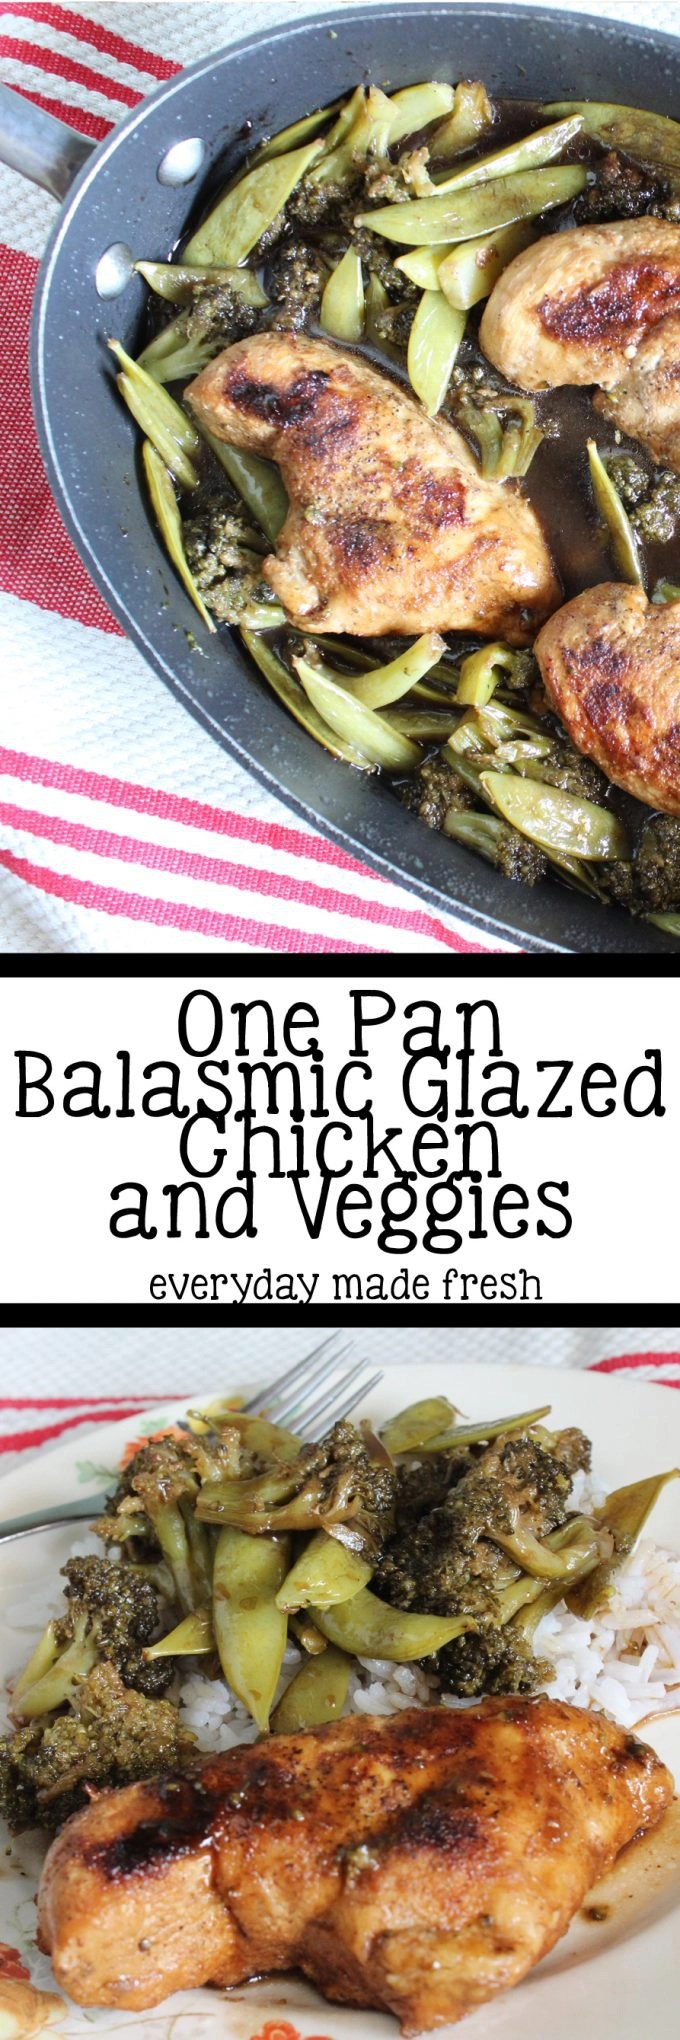 The slight tangy flavors from the balsamic vinegar make this One Pan Balsamic Glazed Chicken and Veggies so tasty! The one pan means it's a quick and easy clean-up, making meal time more enjoyable. | EverydayMadeFresh.com